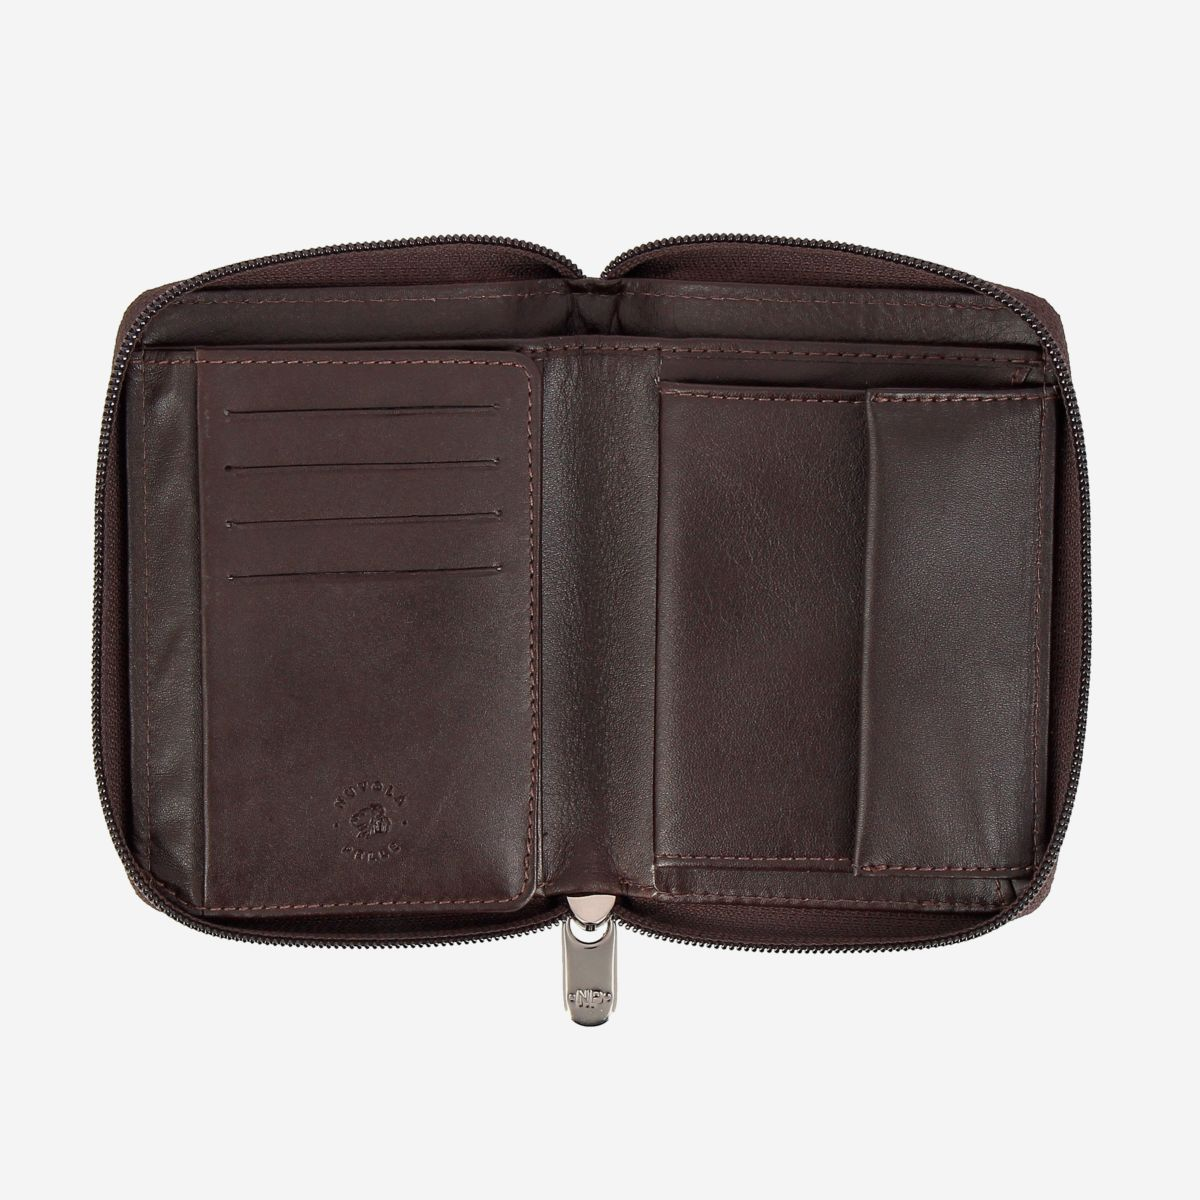 NUVOLA PELLE Mens Leather Wallet with Zip - Dark Brown